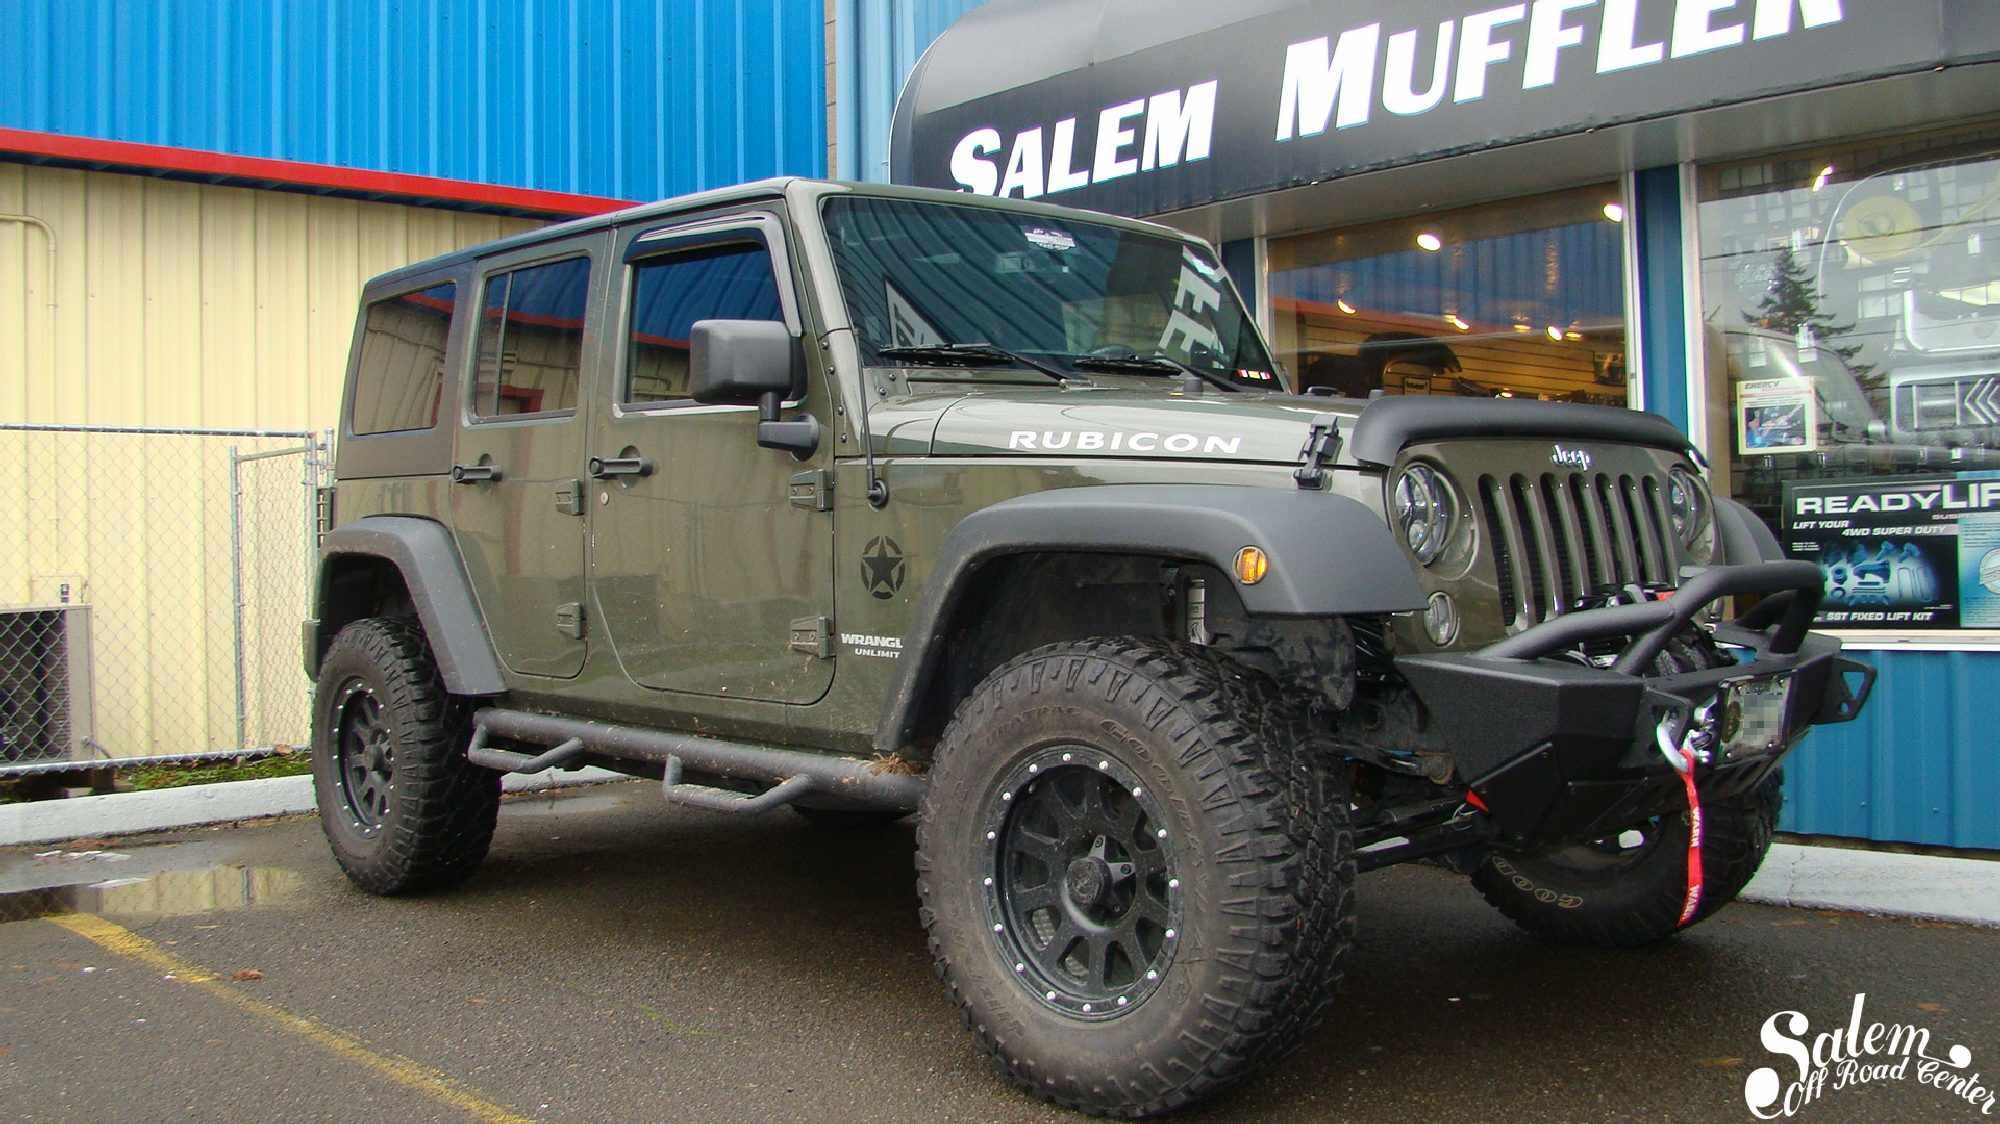 On This 2015 Jeep Wrangler Jku We Installed A Smittybilt Xrc Gen 2 Front Bumper And A Warn 9 5cti S Winch Www Salemoff 2015 Jeep Wrangler 2015 Jeep Smittybilt